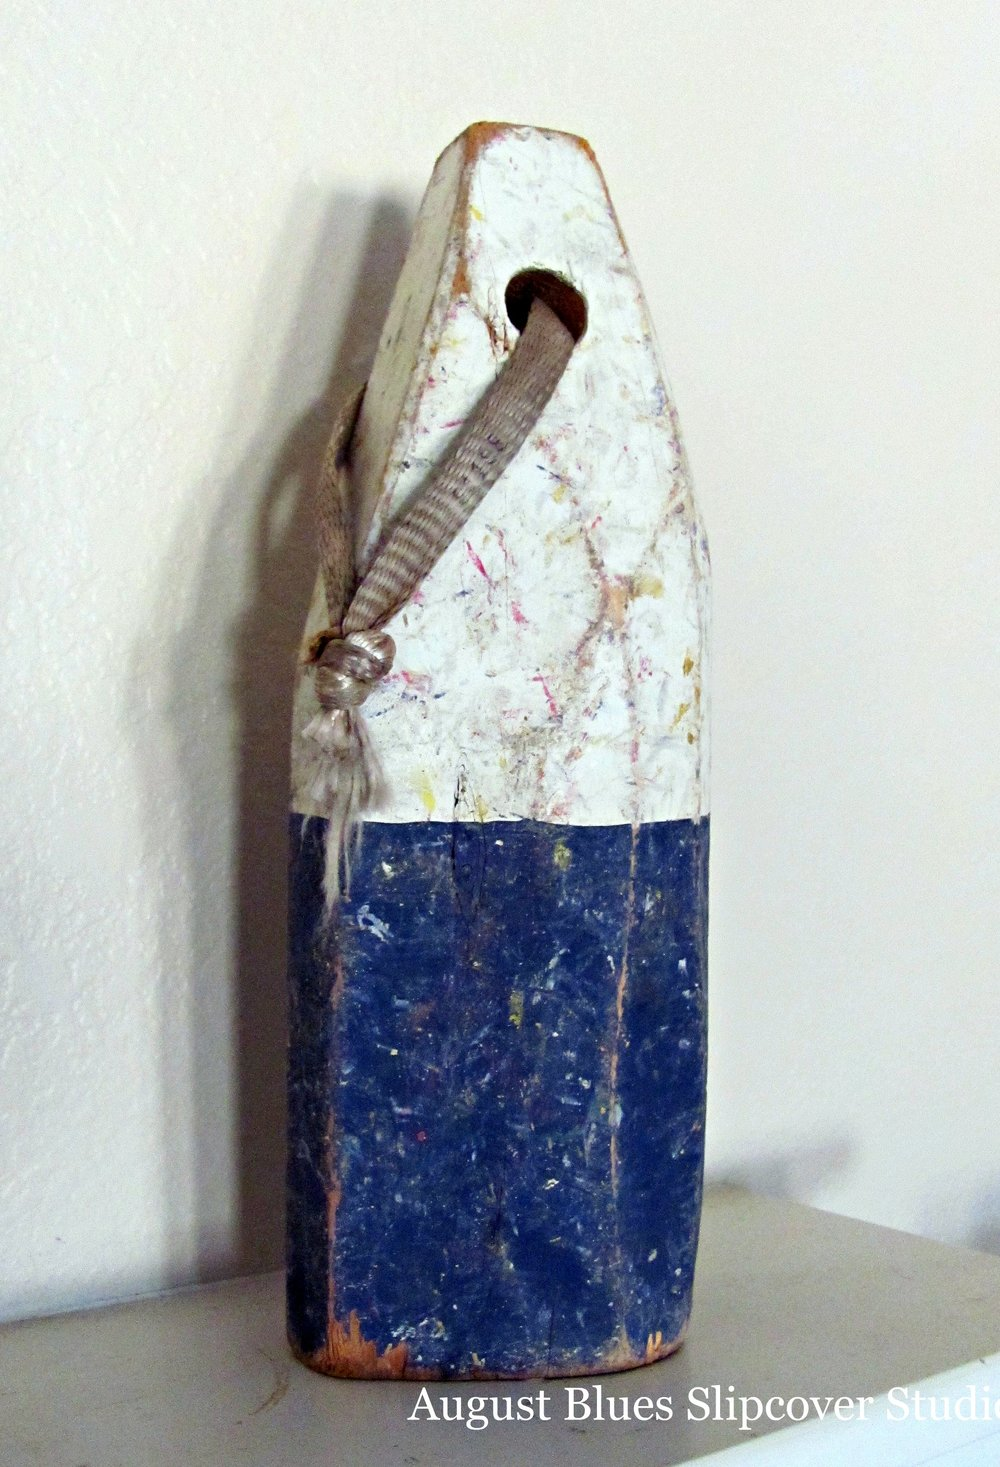 August Blues - Vintage Buoy